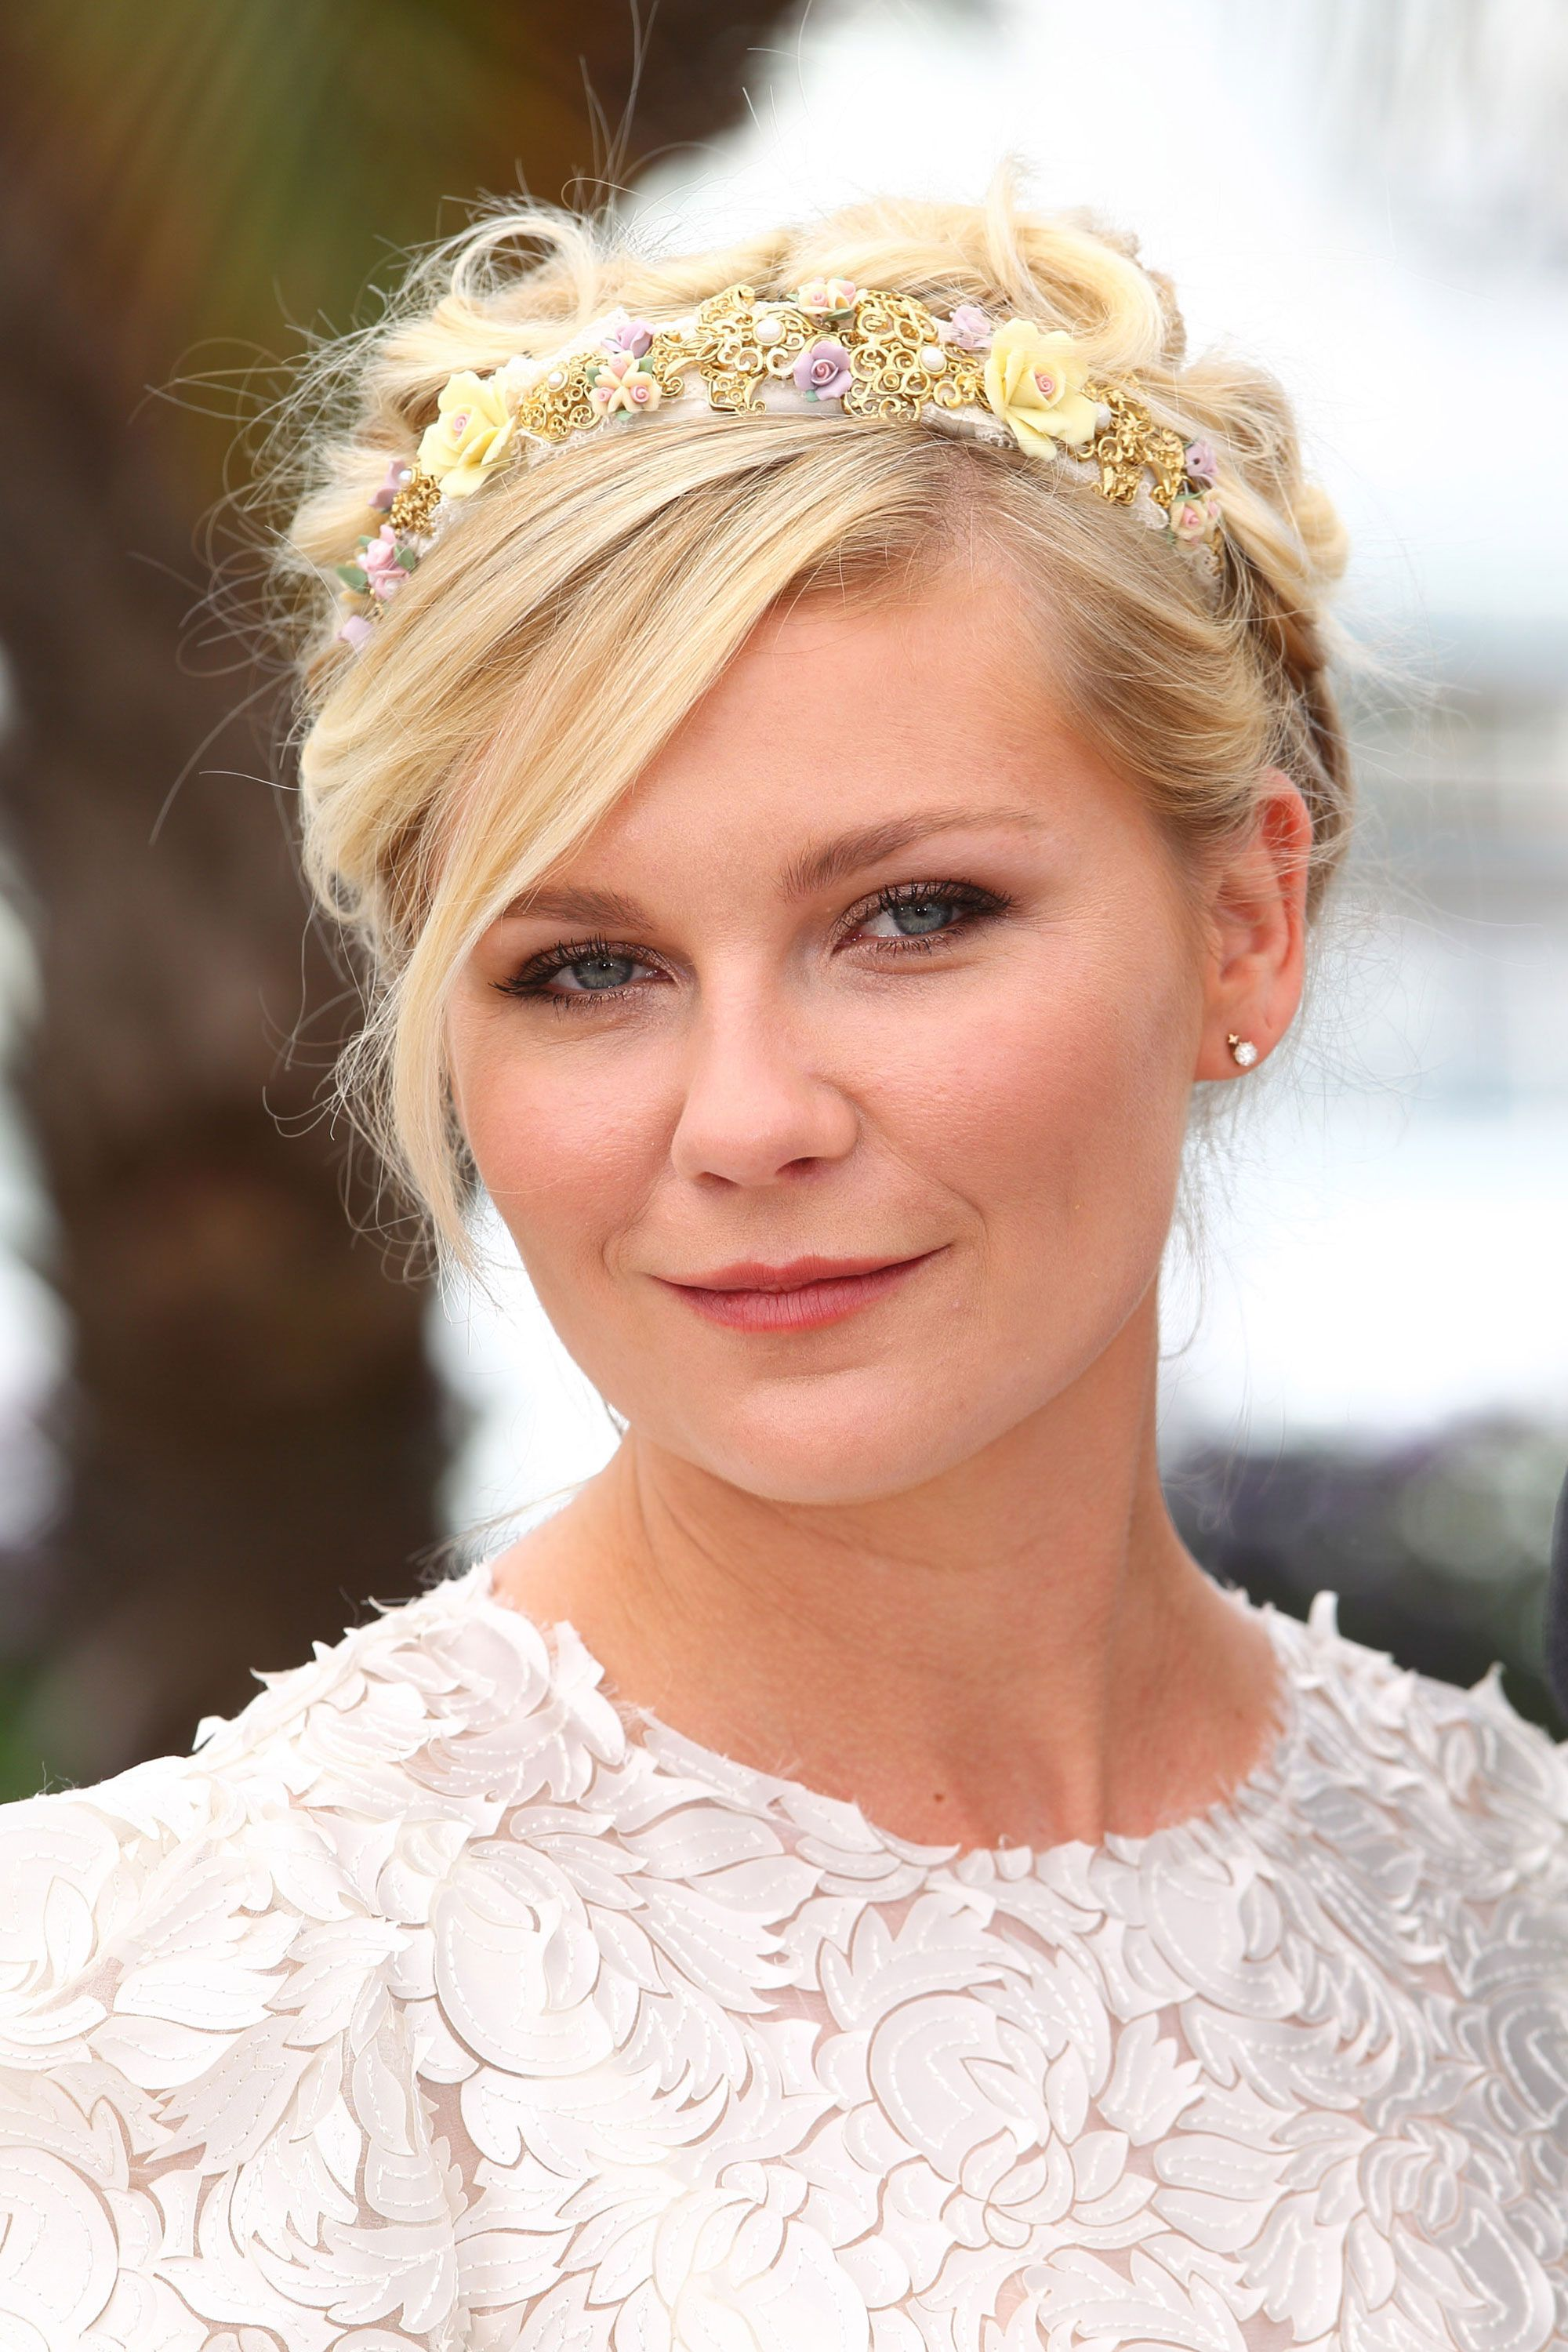 20 Gorgeous Flower Crowns Your Pinterest Board Needs Now